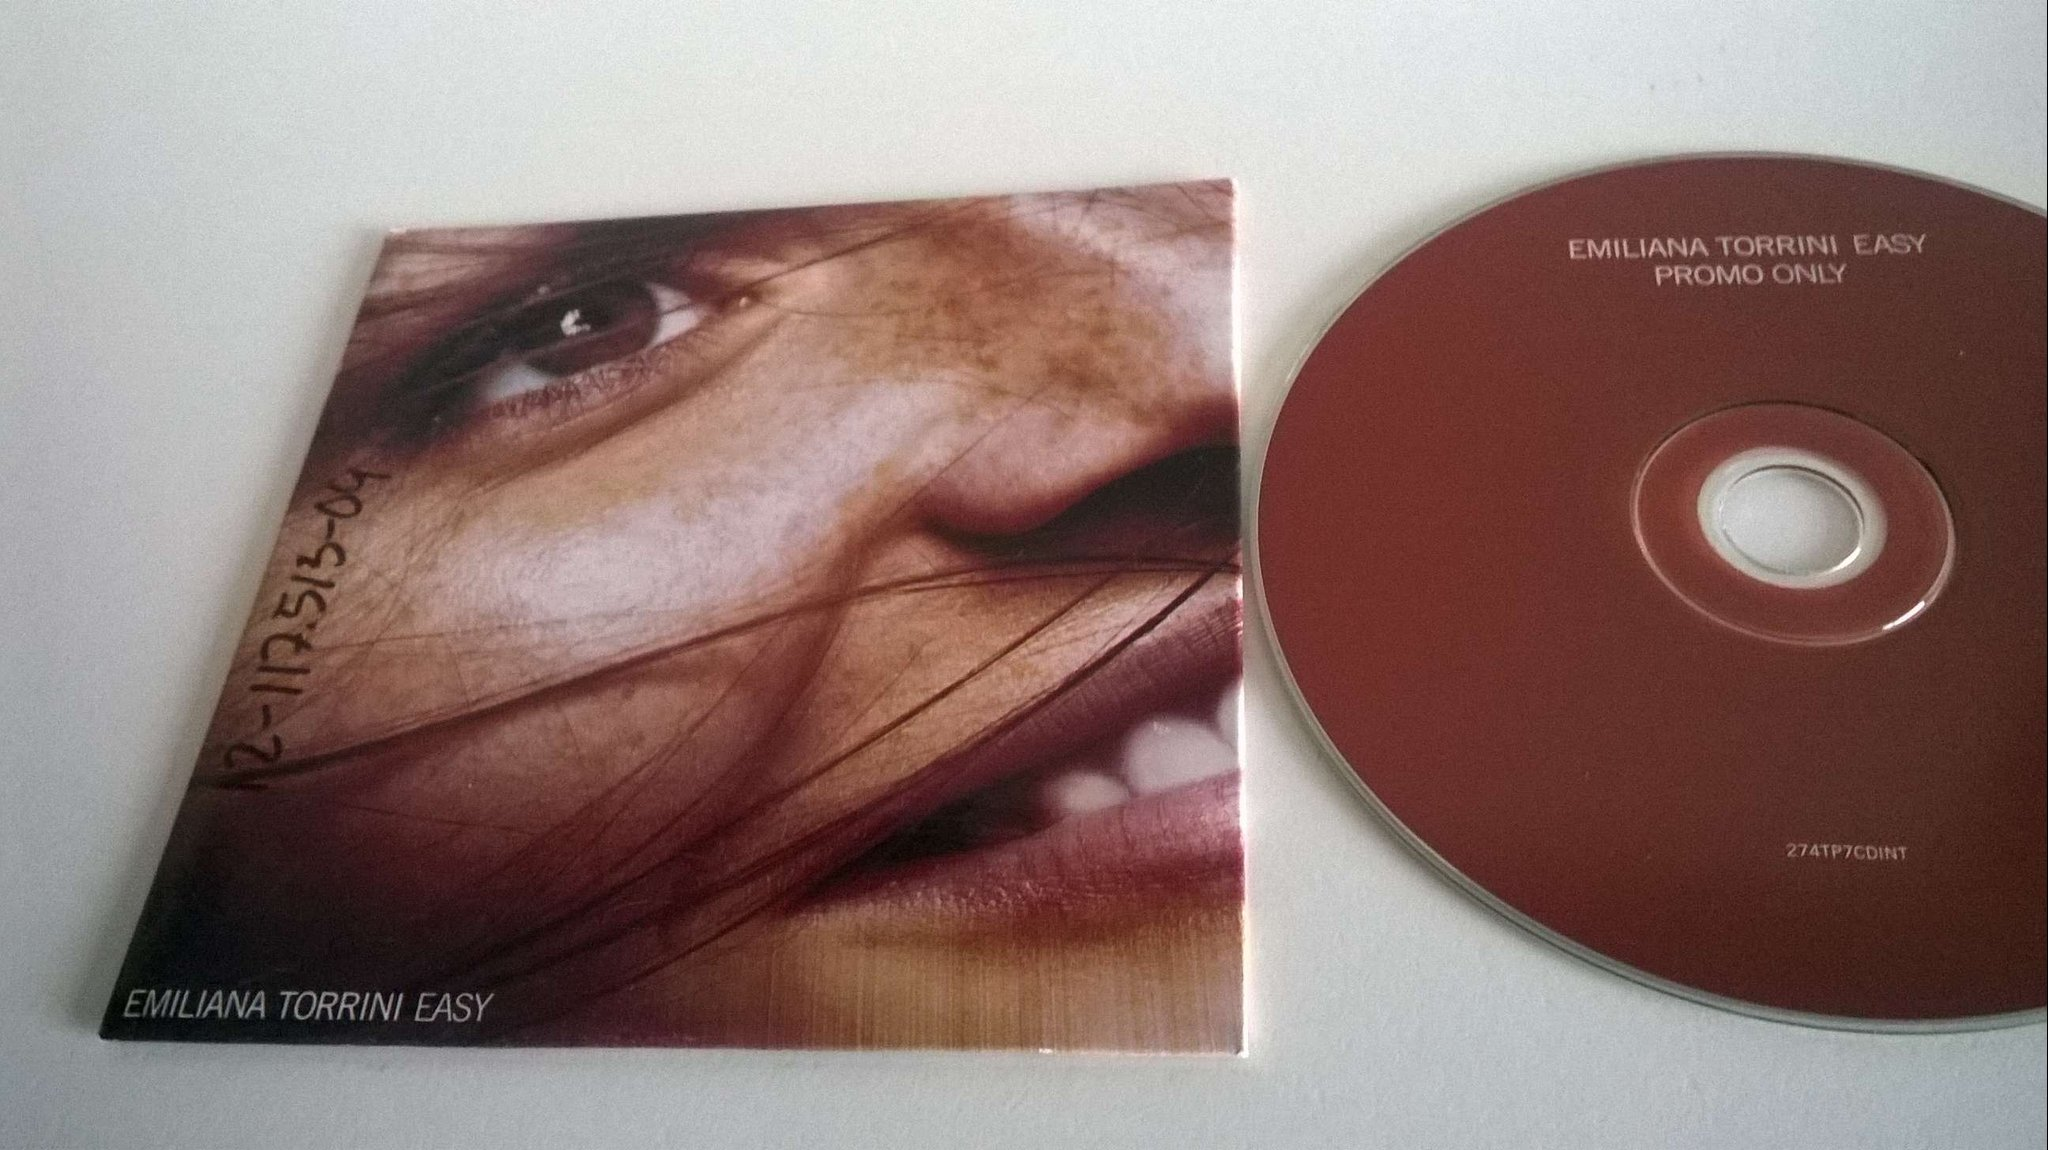 Emiliana Torrini - Easy, single CD, promo